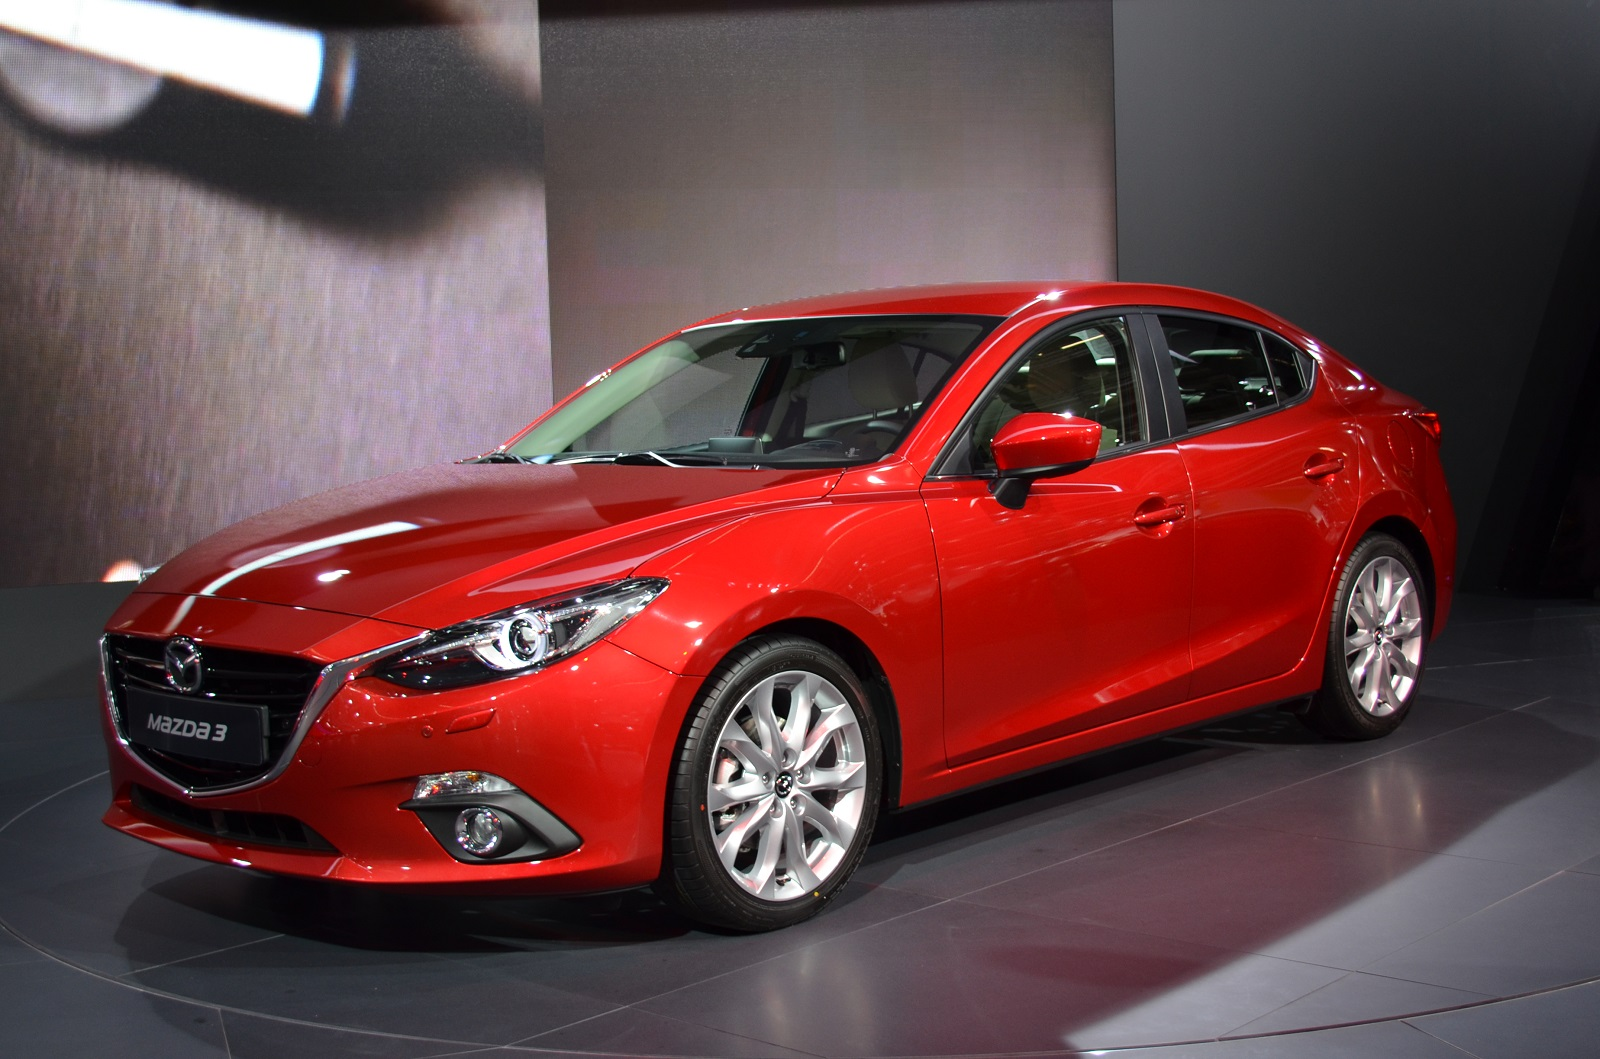 2014 mazda 3 sedan live photo gallery 2013 frankfurt auto show. Black Bedroom Furniture Sets. Home Design Ideas